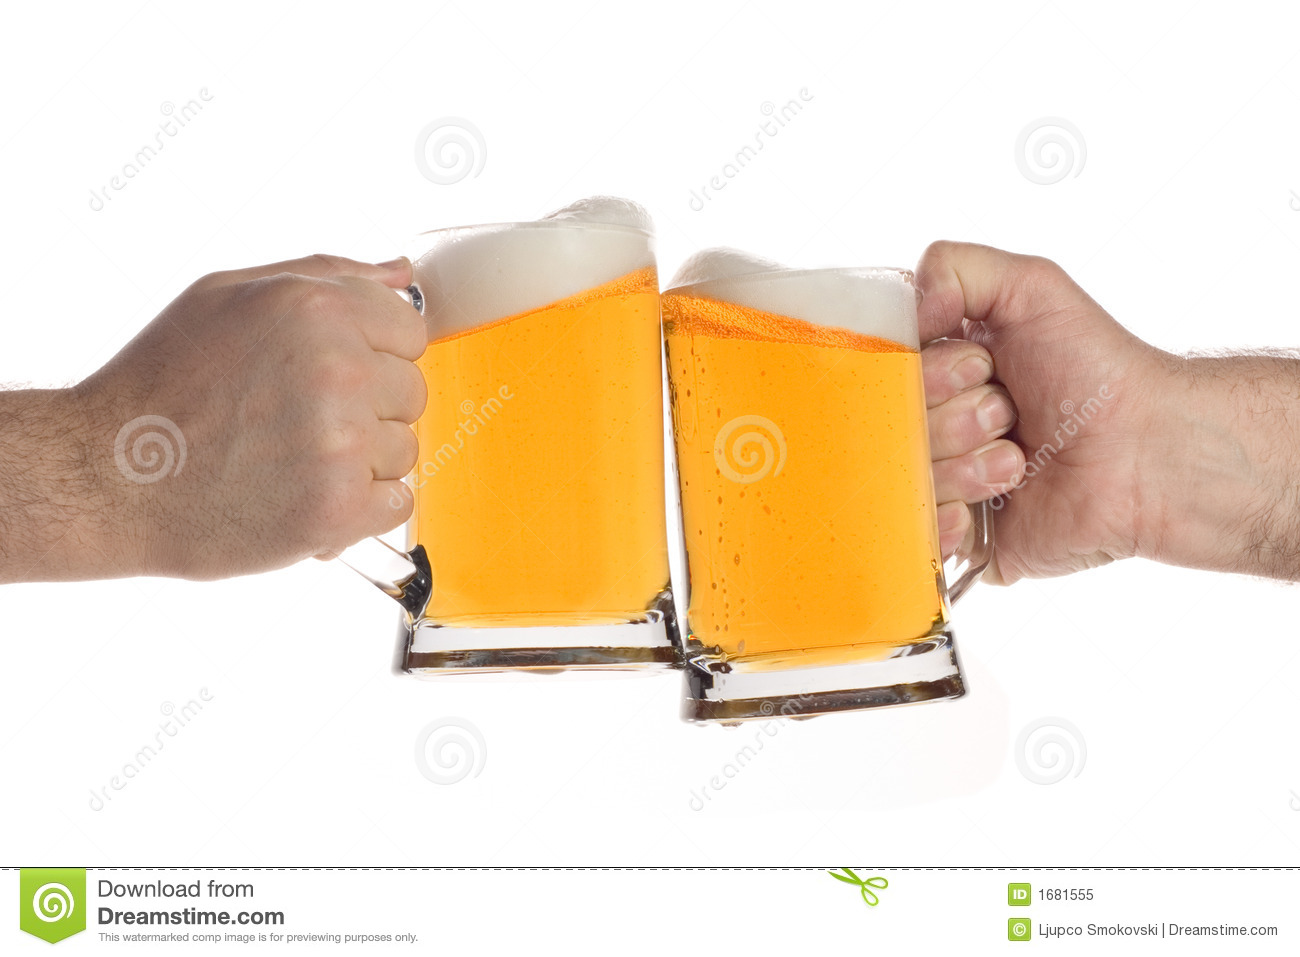 Two People Making A Toast With Beer Mugs Royalty Free Stock Photo